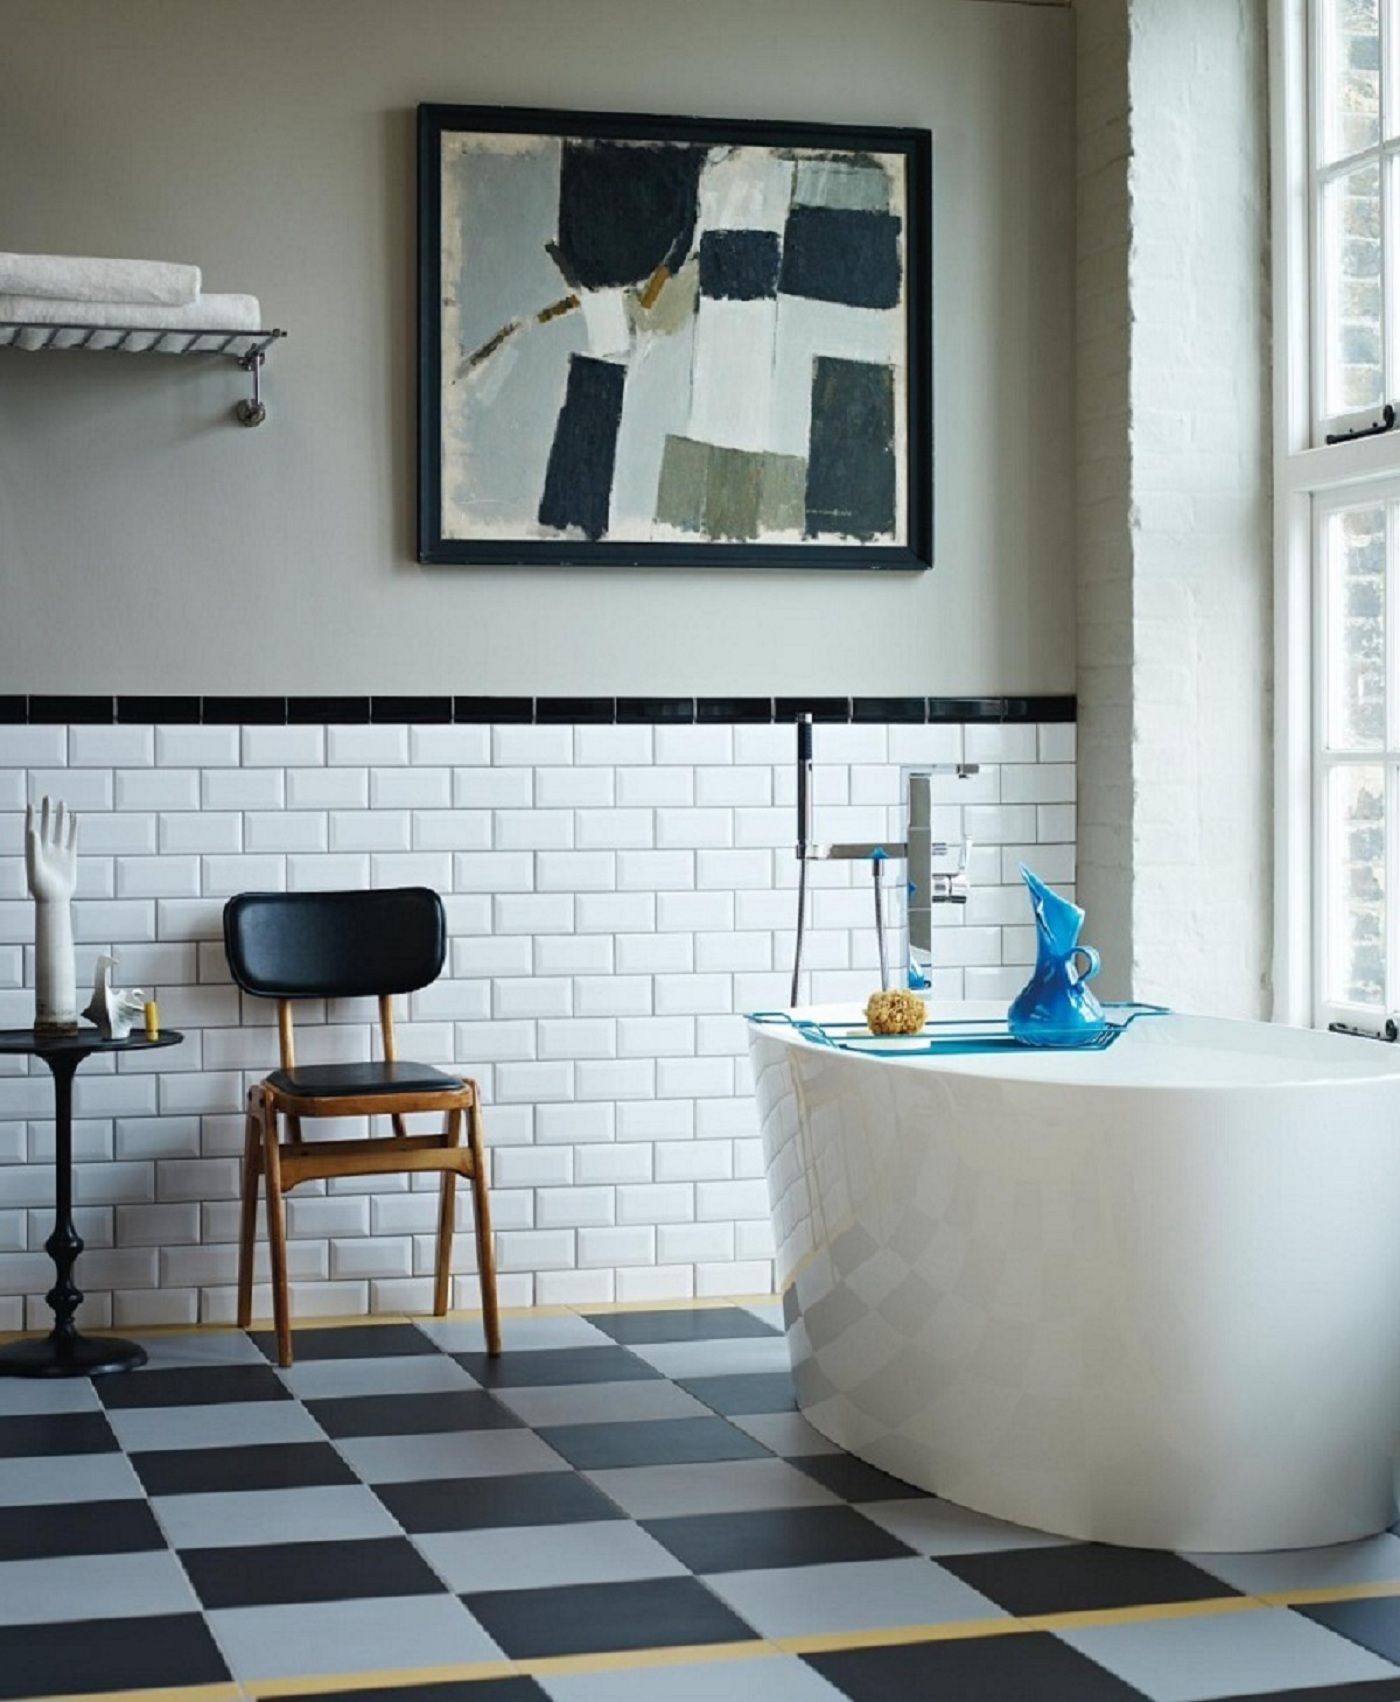 I Just Love Brick Style Tiles Because They Remind Me Of New York Loft Bathrooms And The London Underground Clic Looks From Two My Favourite Cities